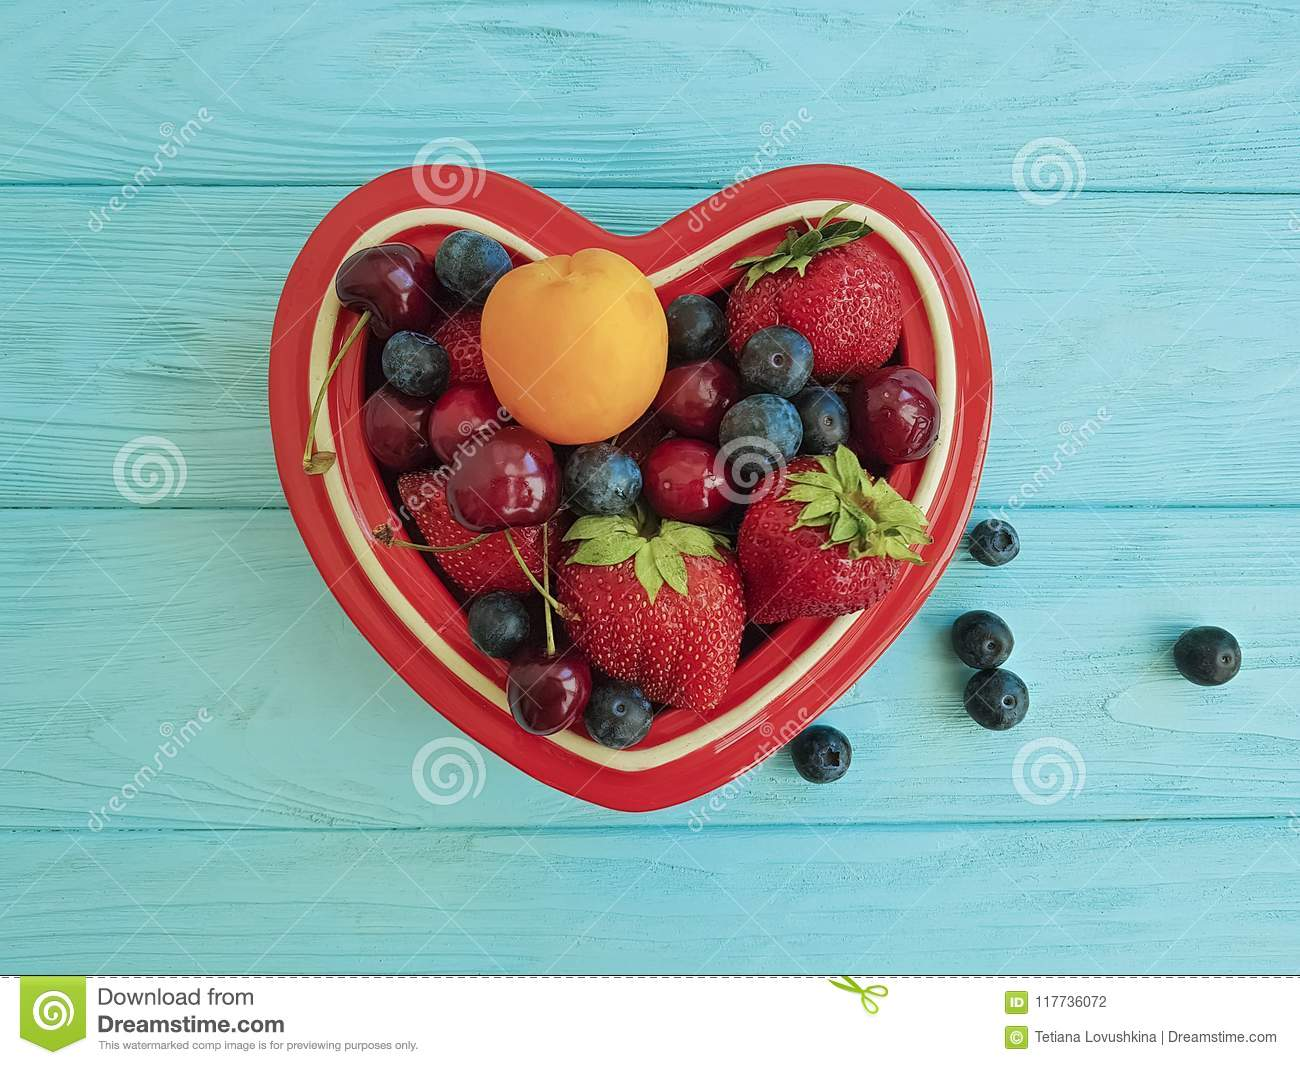 fruit strawberry, blueberry, cherry, apricot detox plate heart on blue wooden